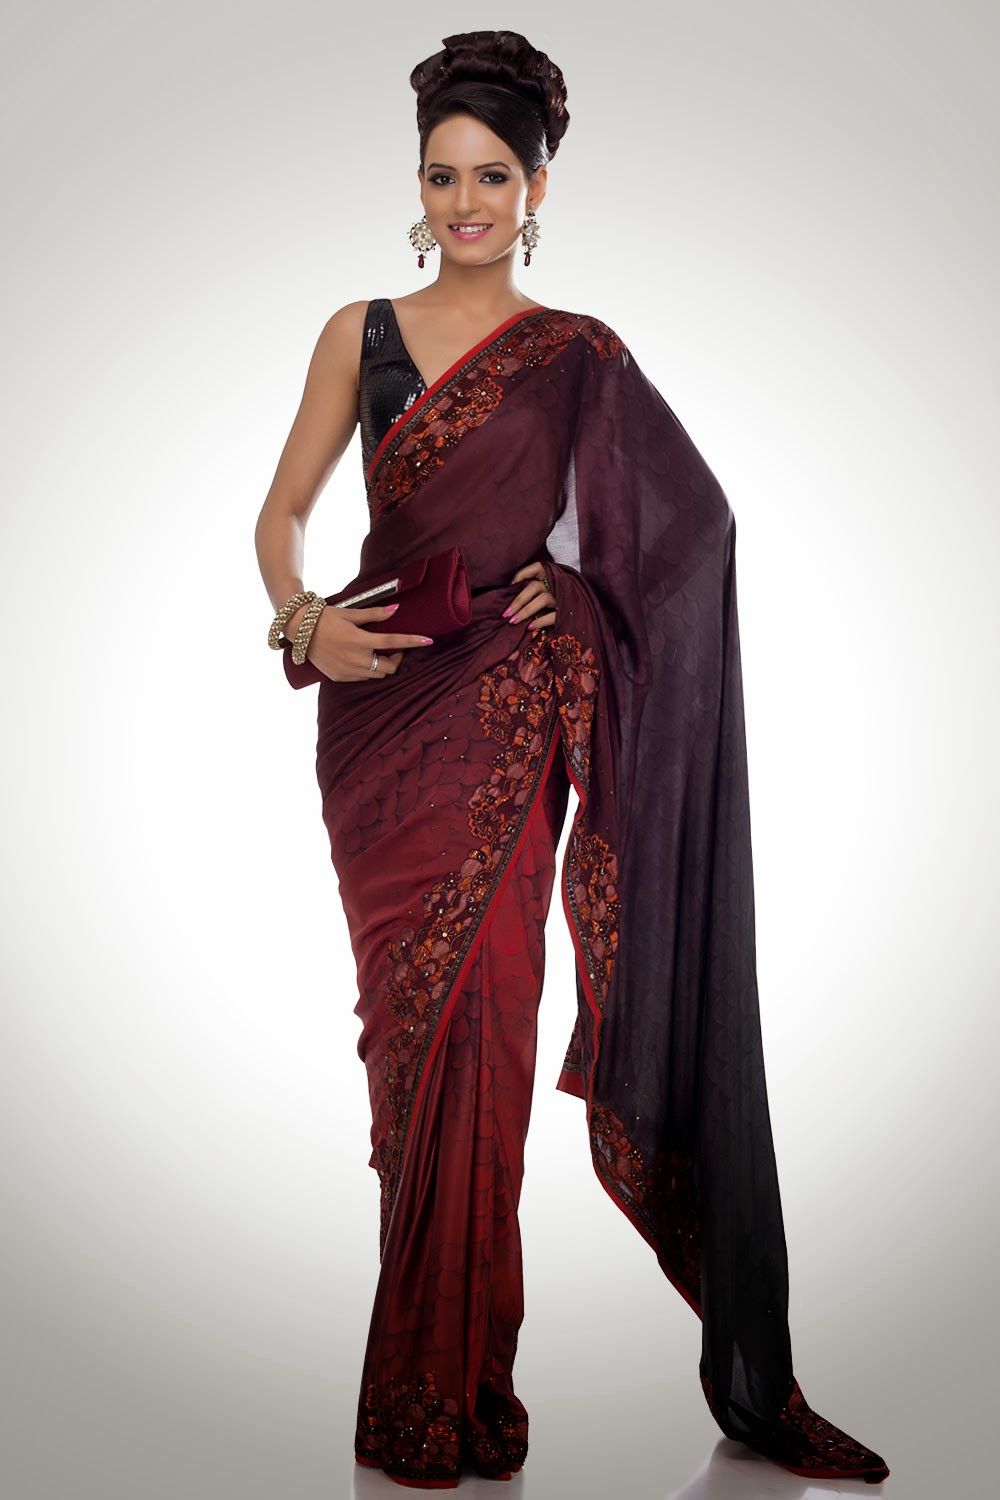 Indian Desi Females In Saree Full Hd  Photo Chocolate-1927